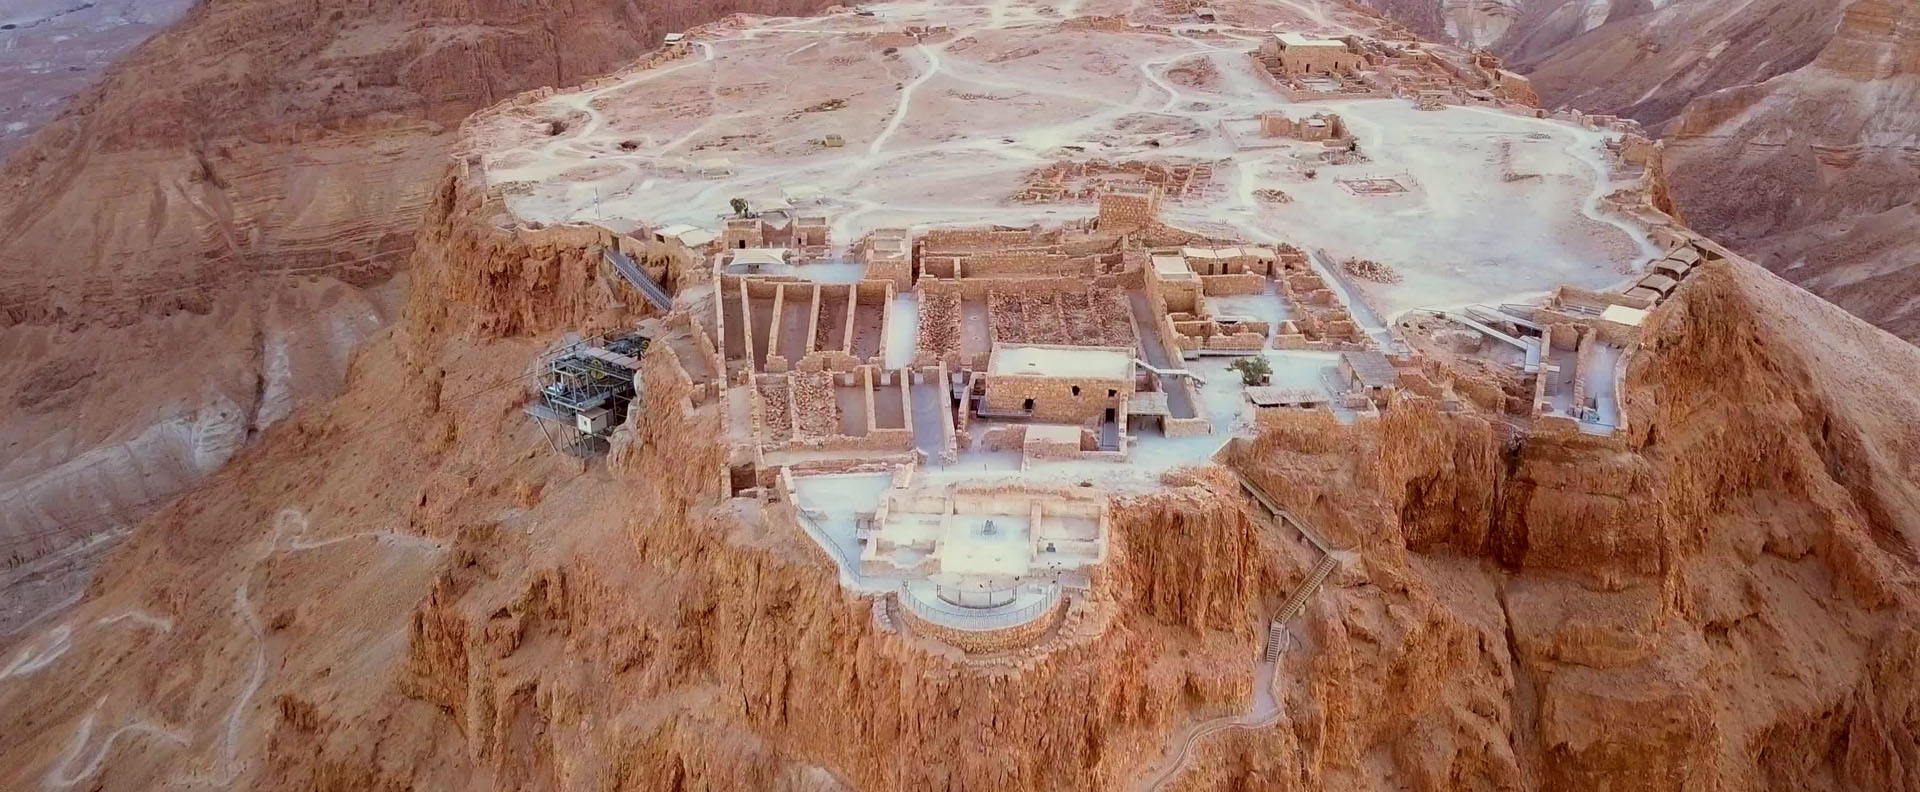 5-best-archaeological-sites-in-israel5-best-archaeological-sites-in-israel